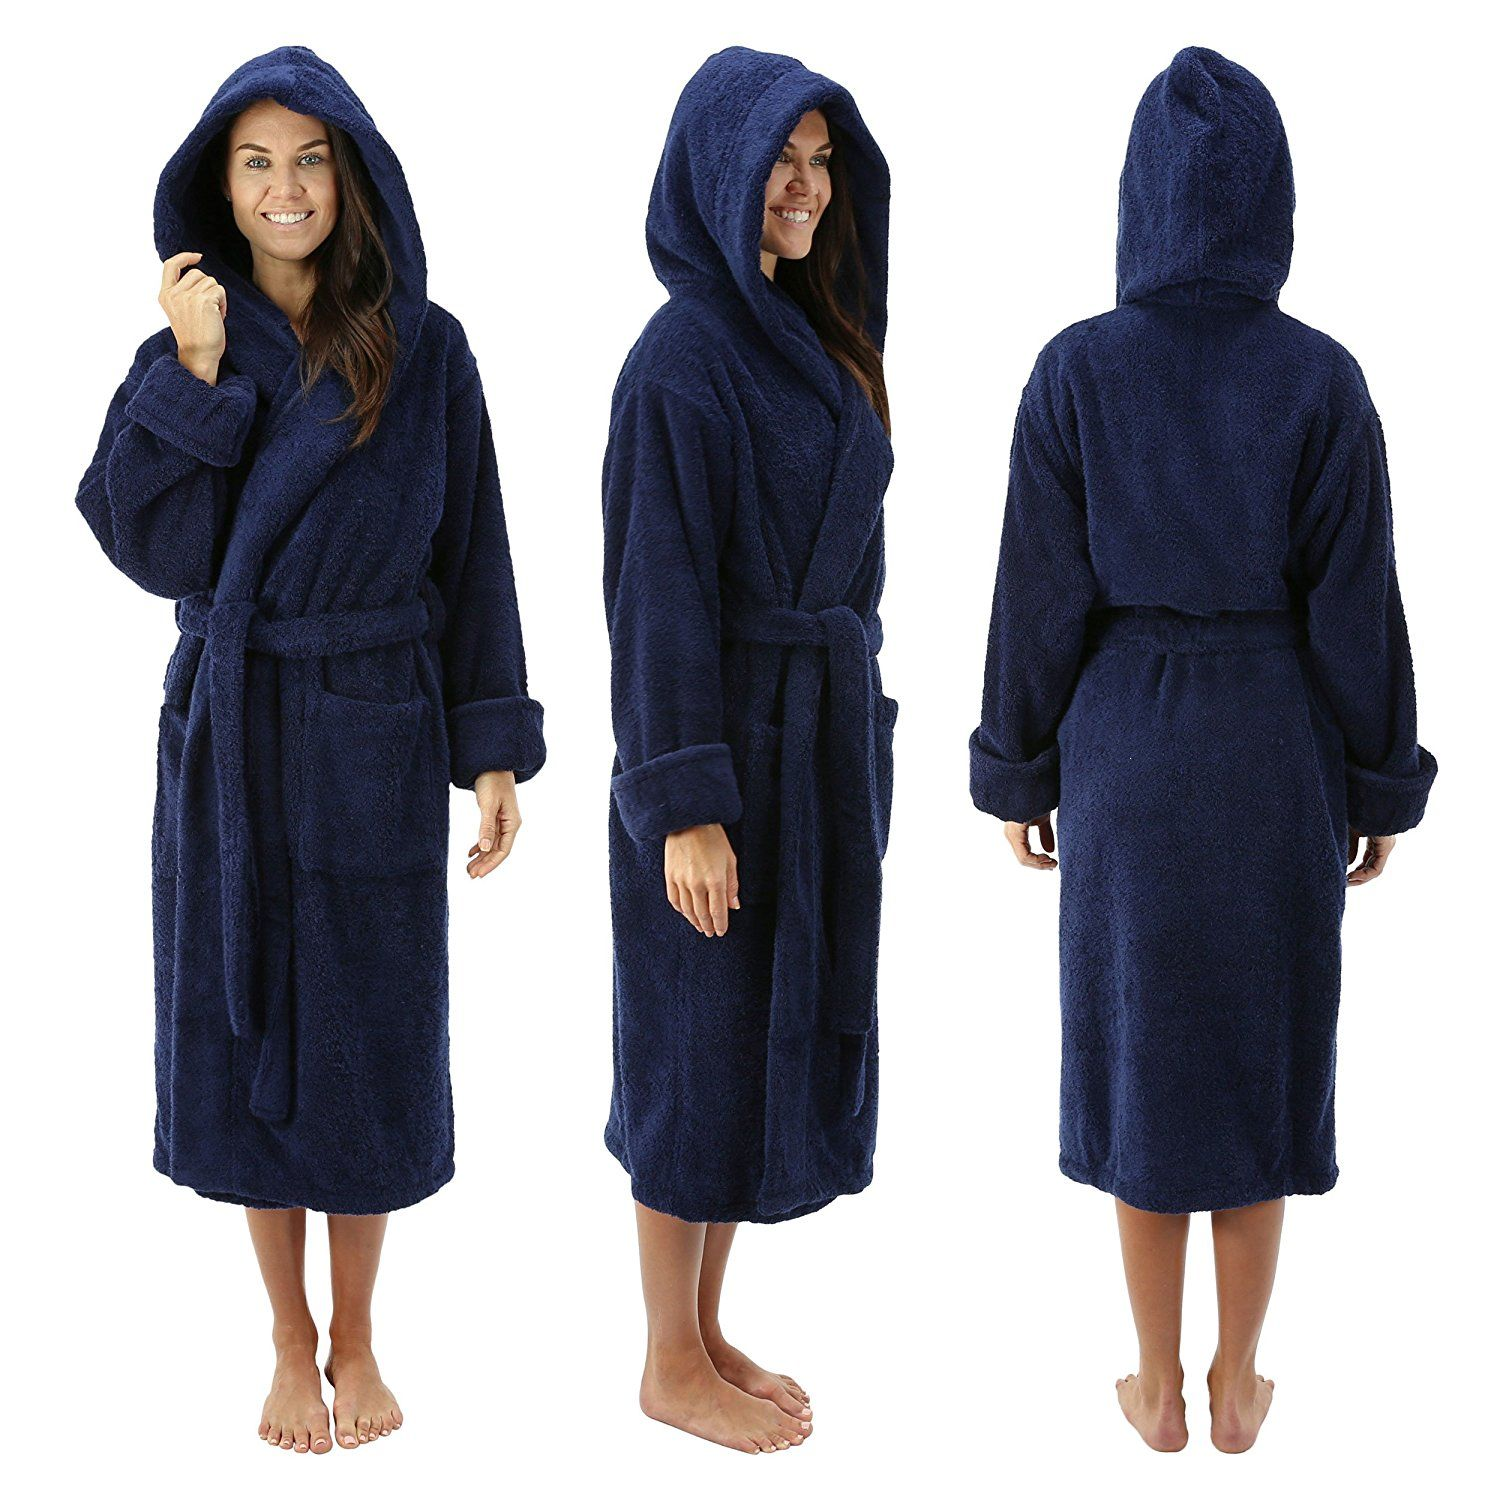 82fc5d444cefe Comfy Robes Women s Deluxe 20 oz. Turkish Cotton Hooded Bathrobe ...